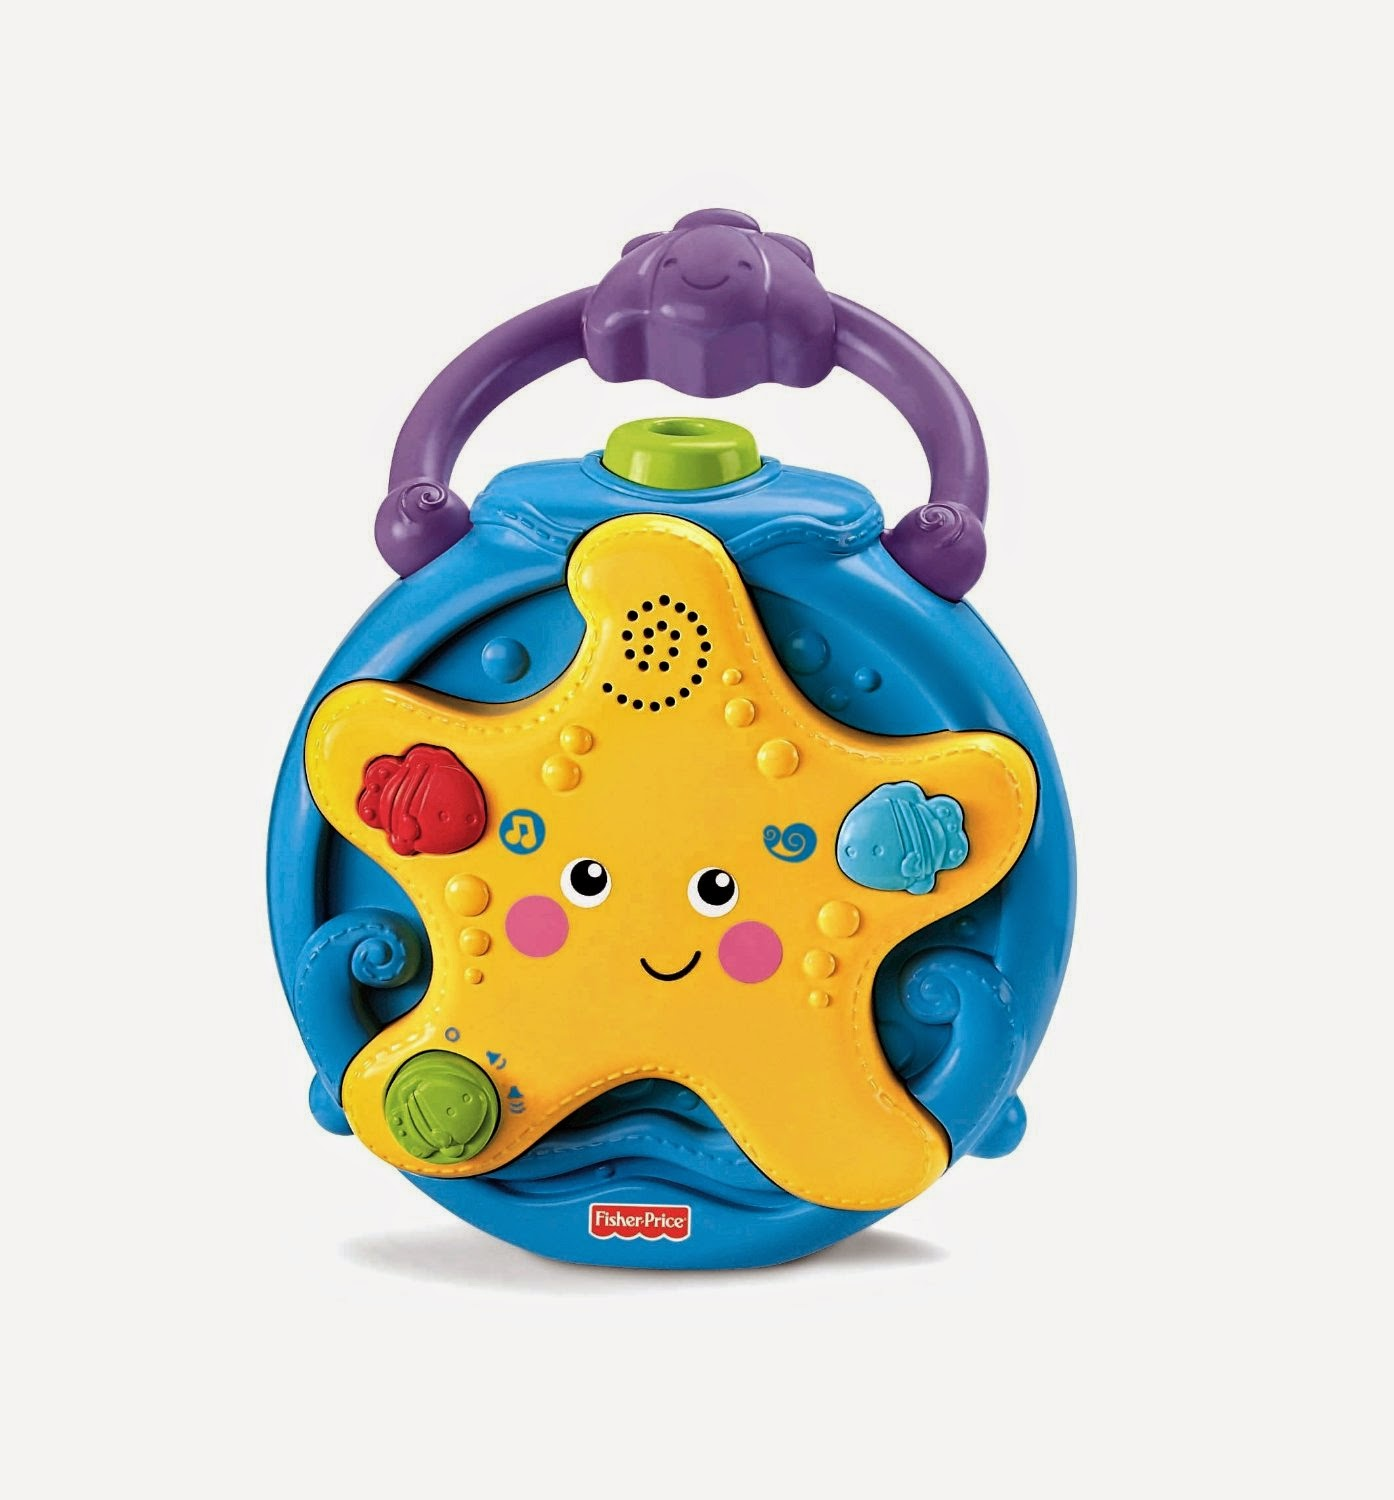 http://www.amazon.com/Fisher-Price-Ocean-Wonders-Projector-Soother/dp/B0028K2RN8/ref=sr_1_6?ie=UTF8&qid=1407431564&sr=8-6&keywords=fisherprice+light+up+soother